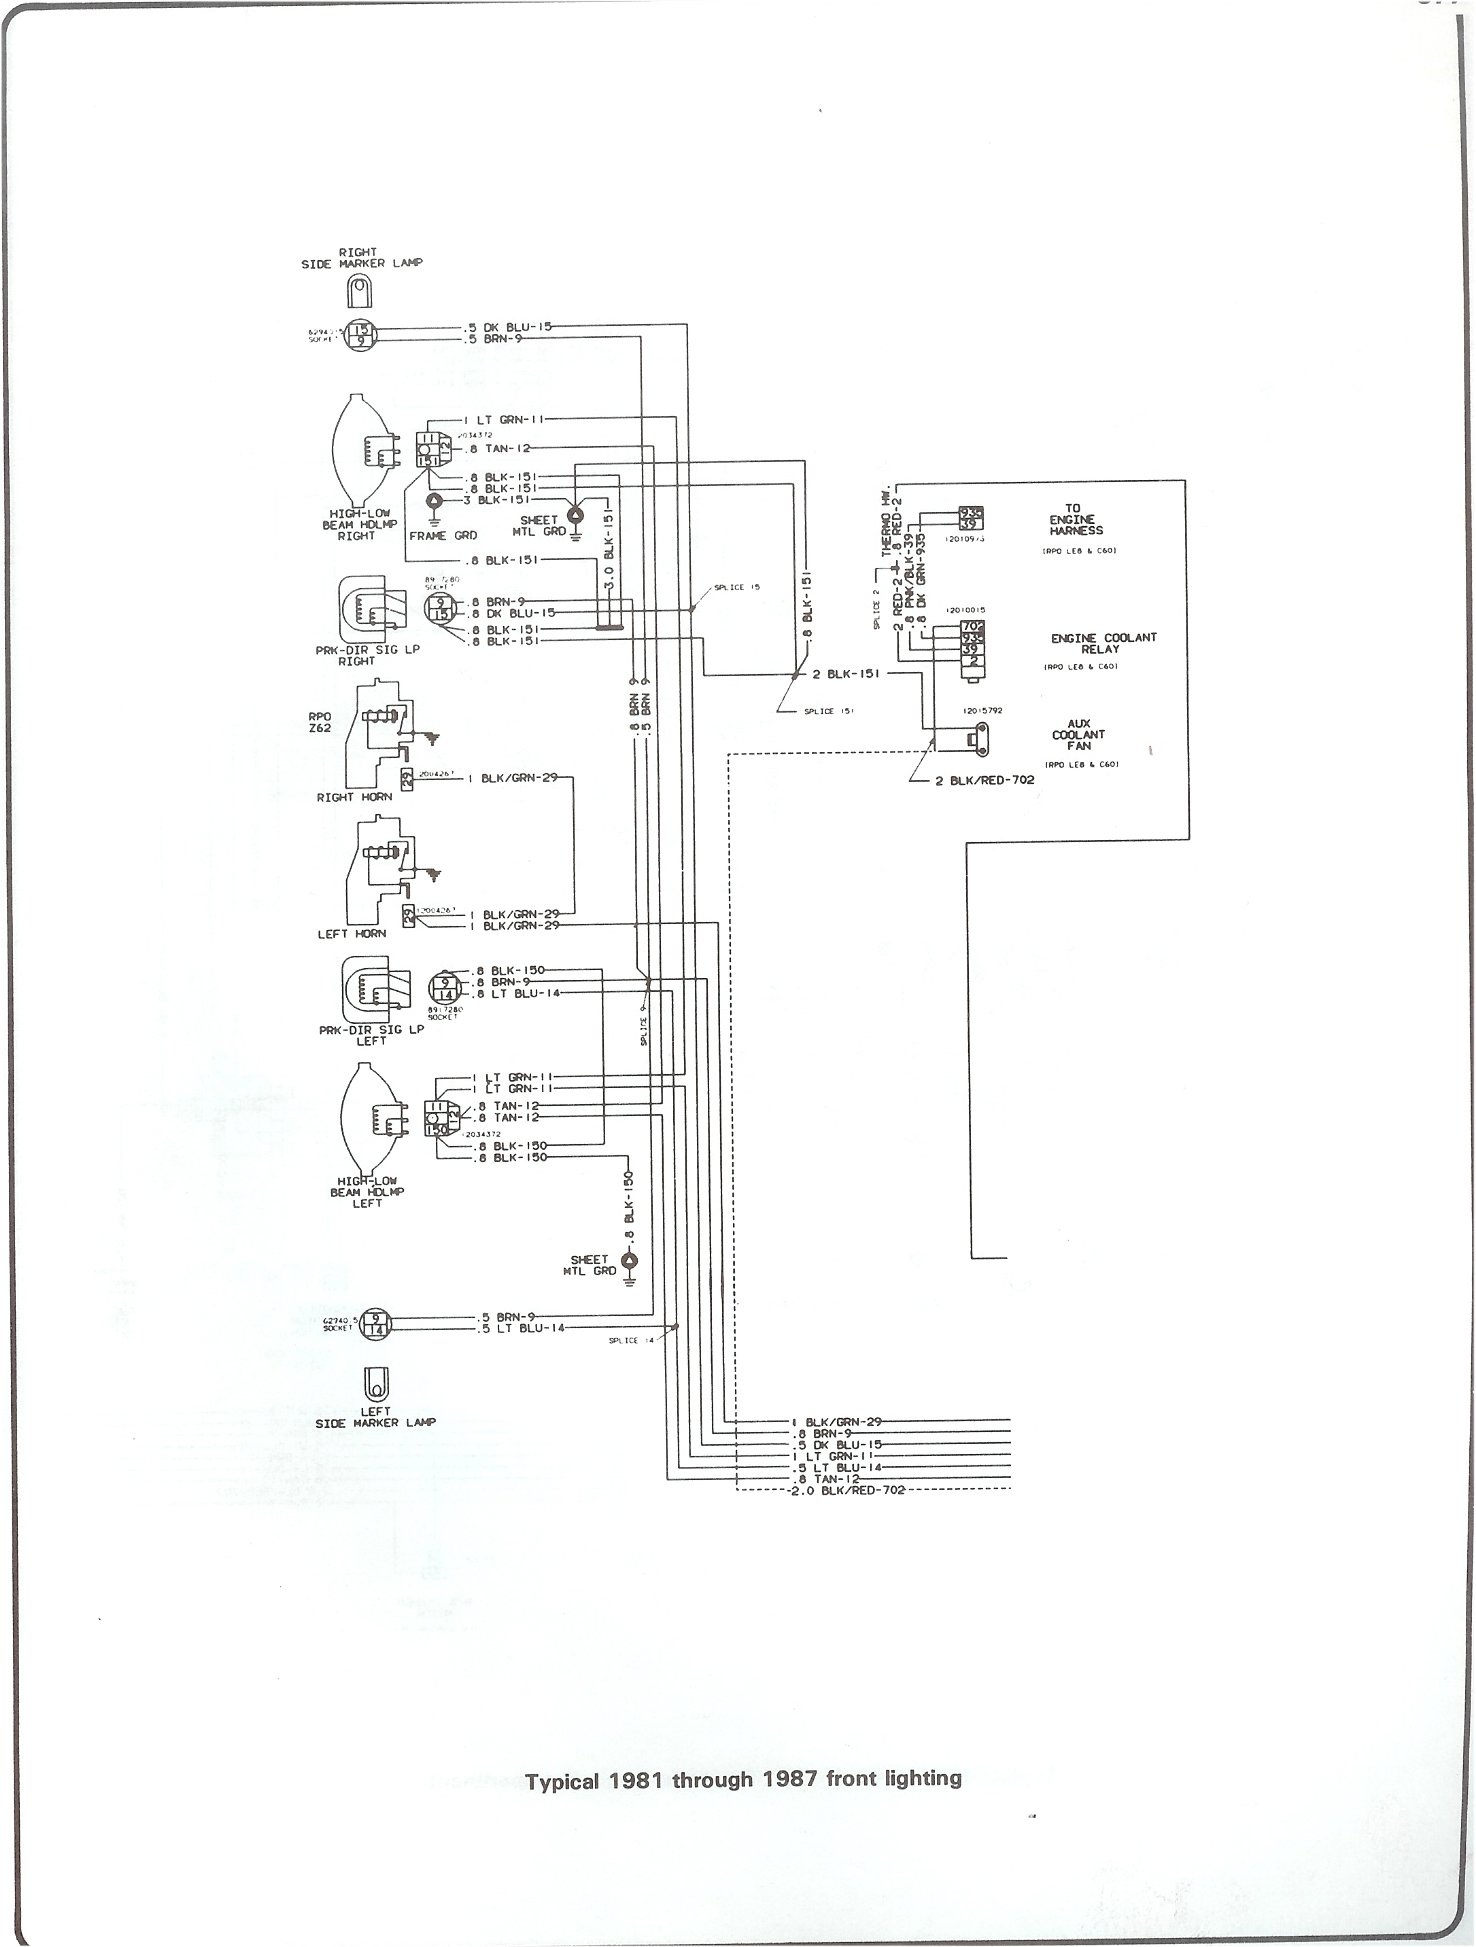 1991 Gmc 3500 Wiring Diagram - 14.18.depo-aqua.de •  Chevy Silverado Starter Wiring Diagram on ford f-250 starter wiring diagram, chevy silverado tail light wiring diagram, 79 trans am starter wiring diagram, 1980 camaro starter wiring diagram, chevy silverado fog light wiring diagram, chevy silverado reverse light wiring diagram, chevy silverado speaker wiring diagram,